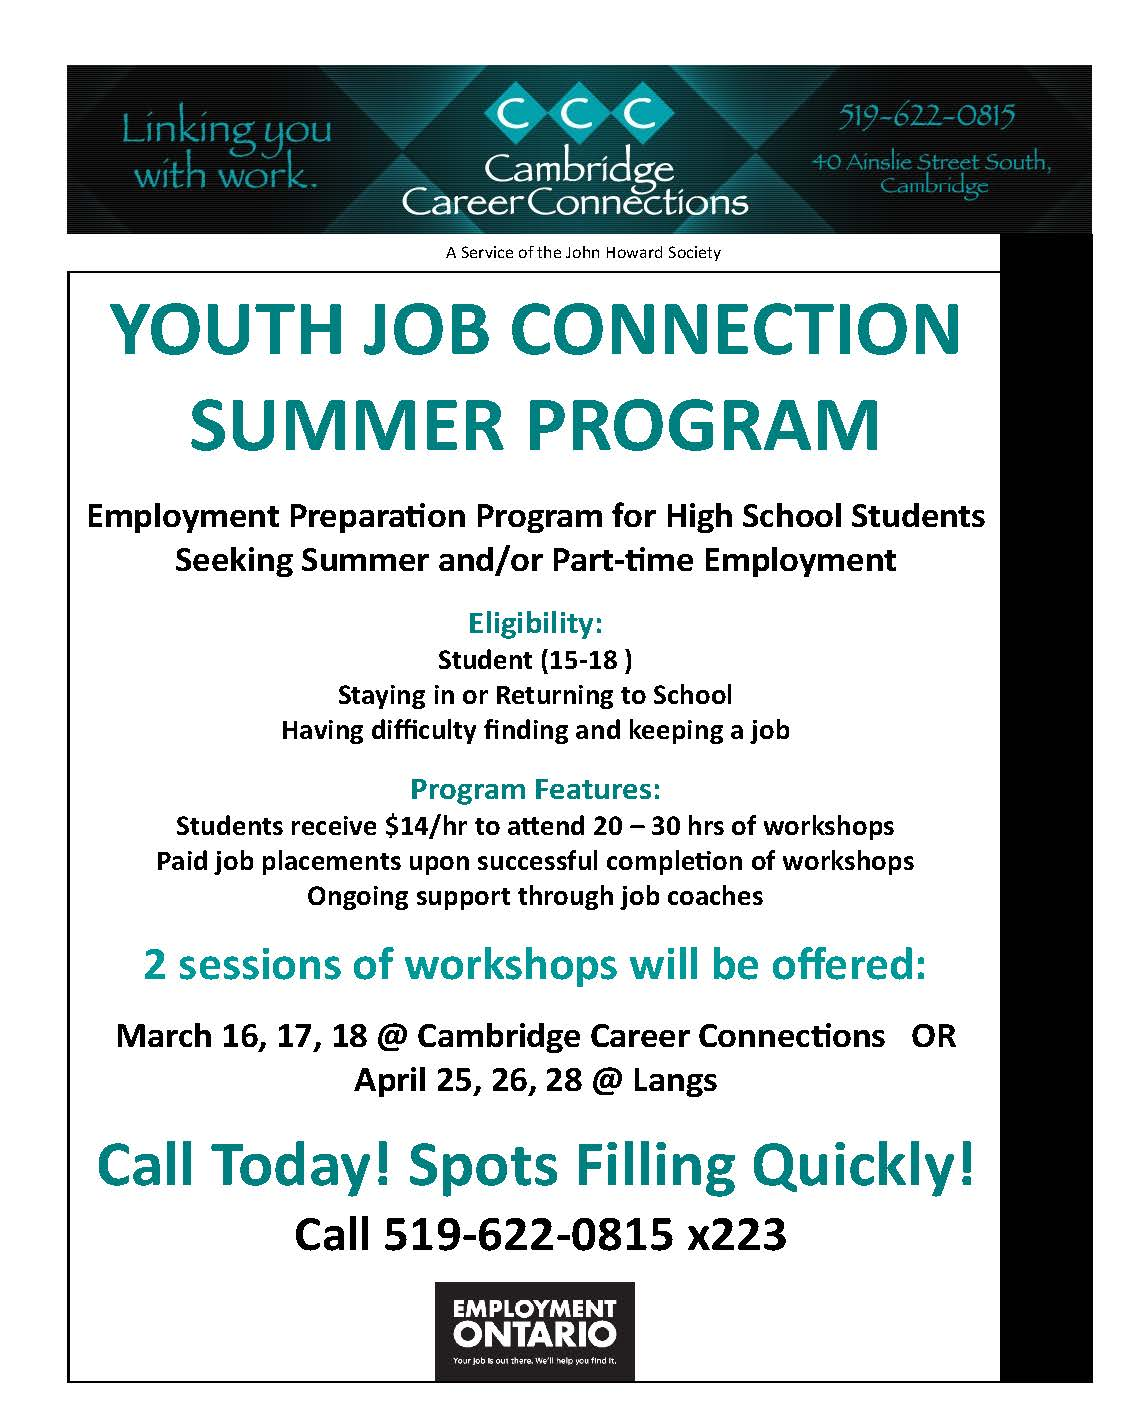 YOUTH JOB CONNECTION FLYER-SUMMER 2020